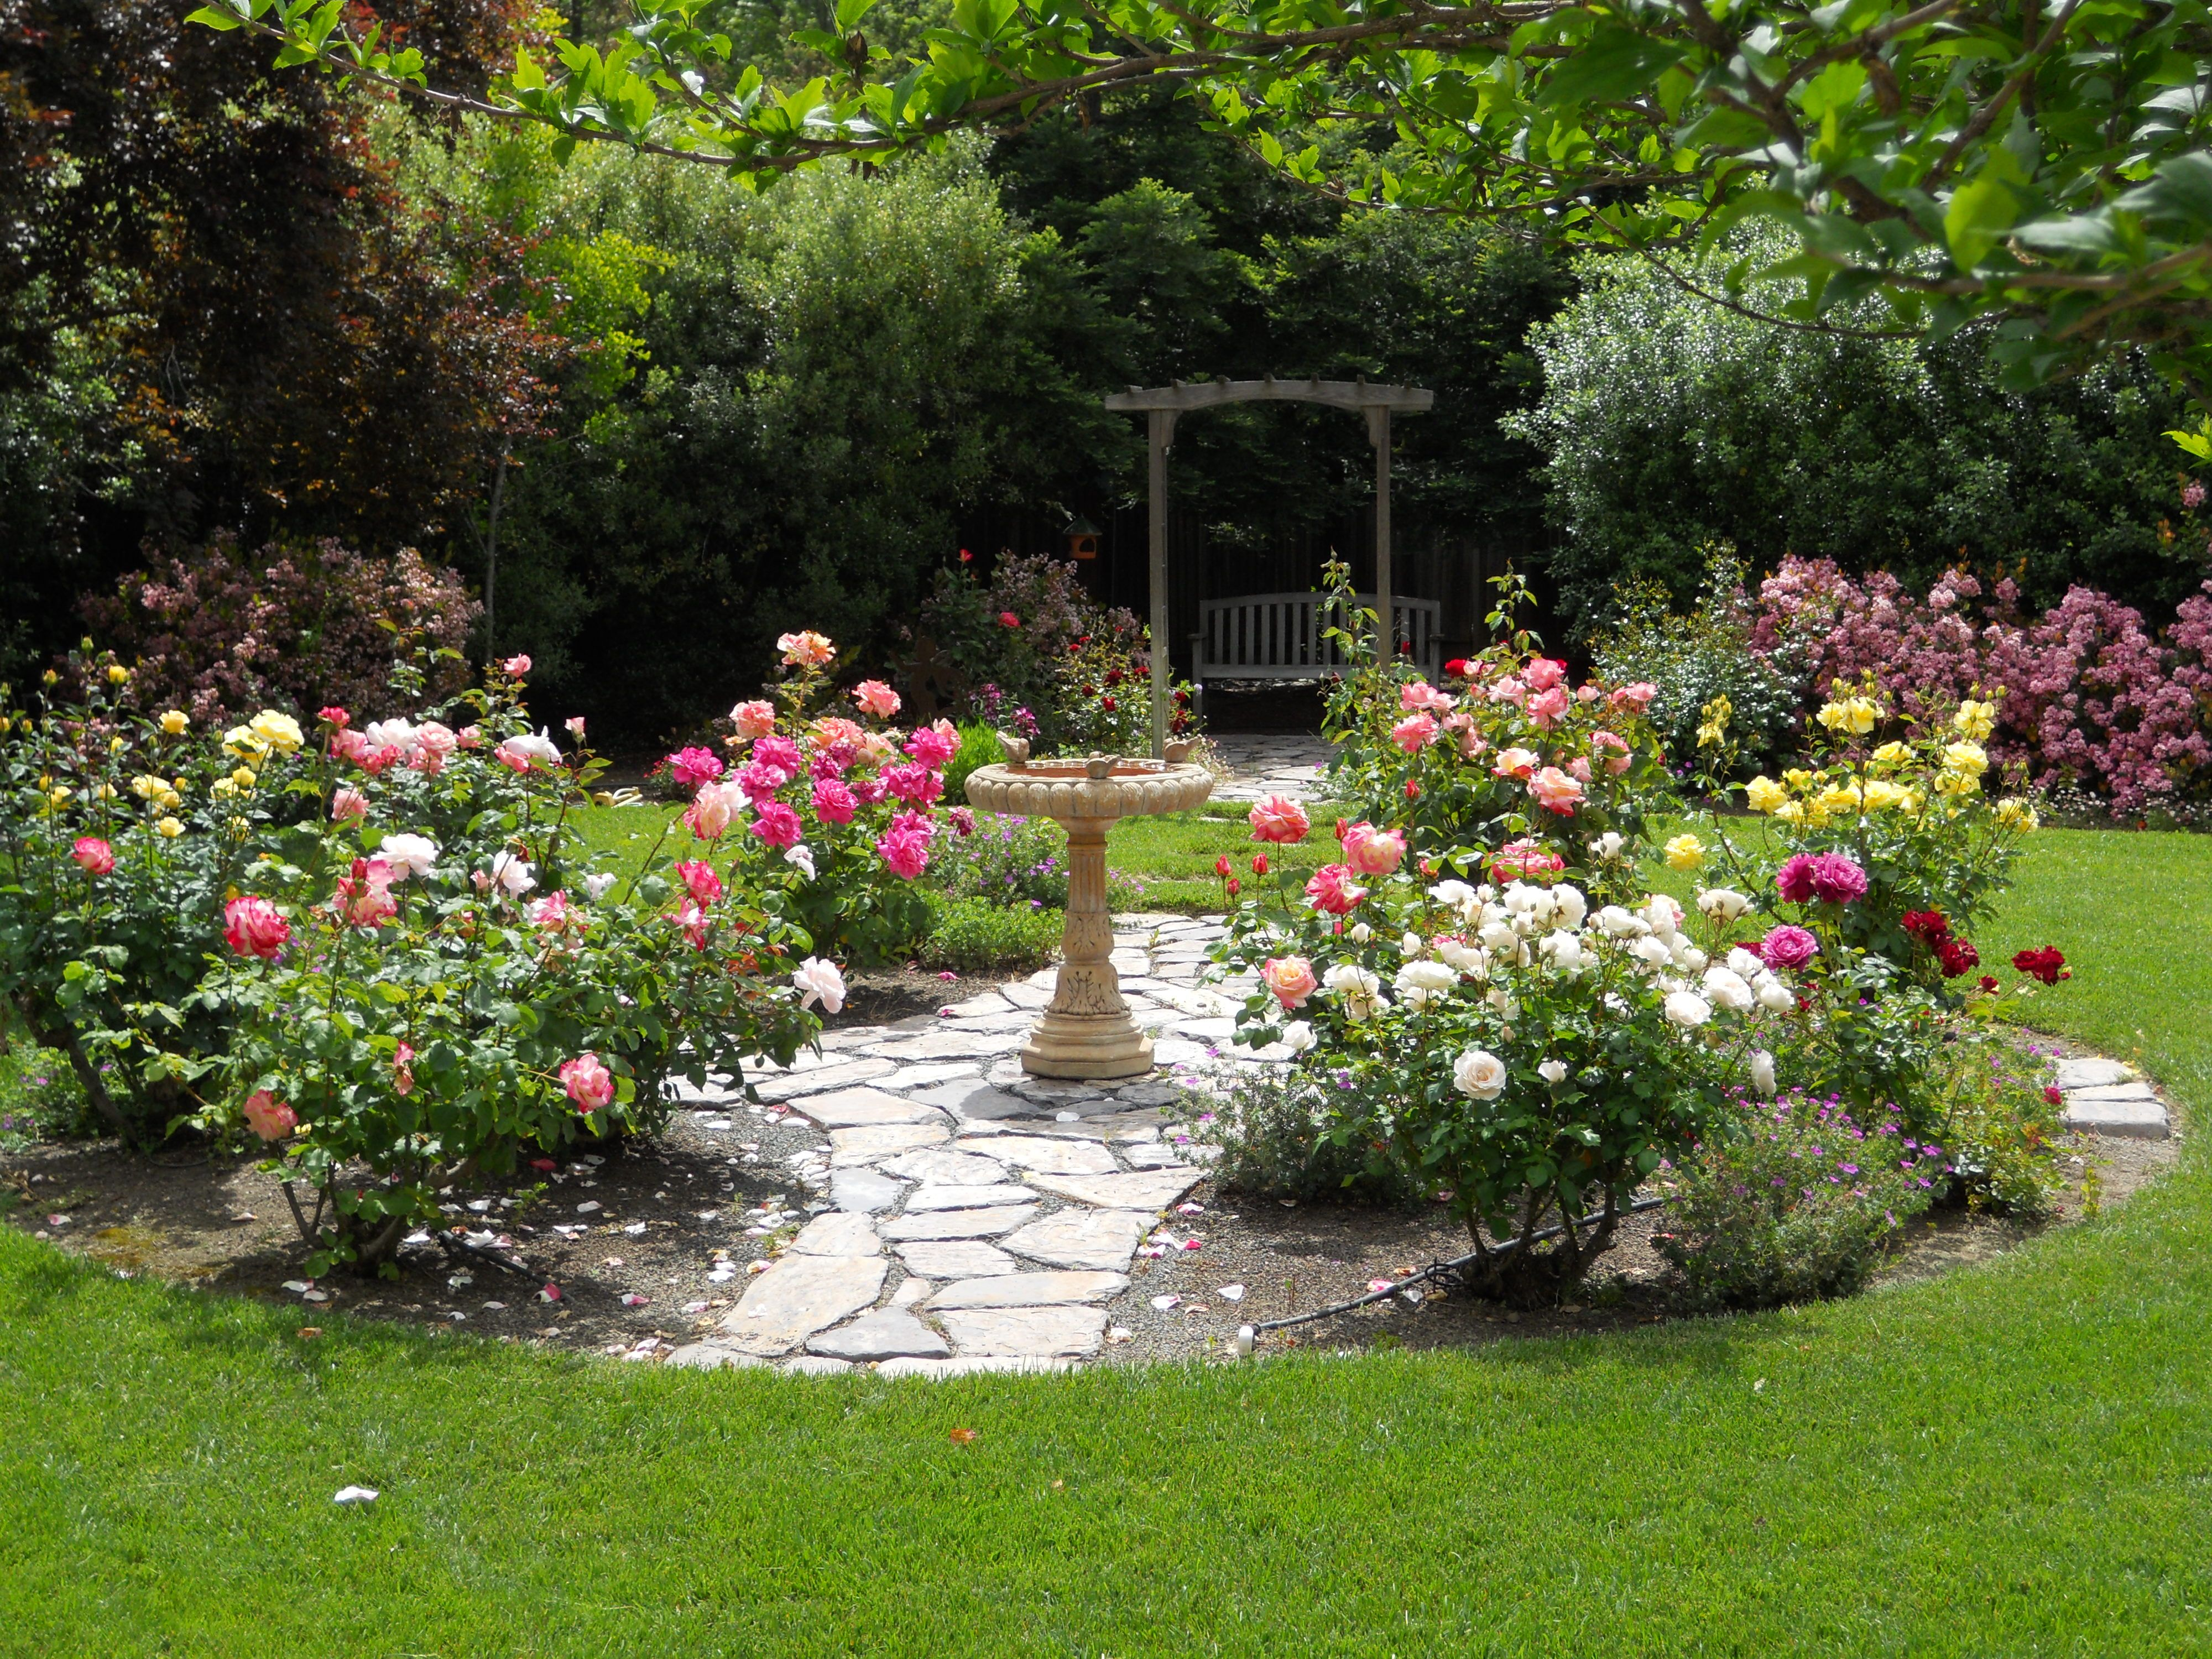 Simple design ideas rose garden plans flowers Landscape garden design ideas